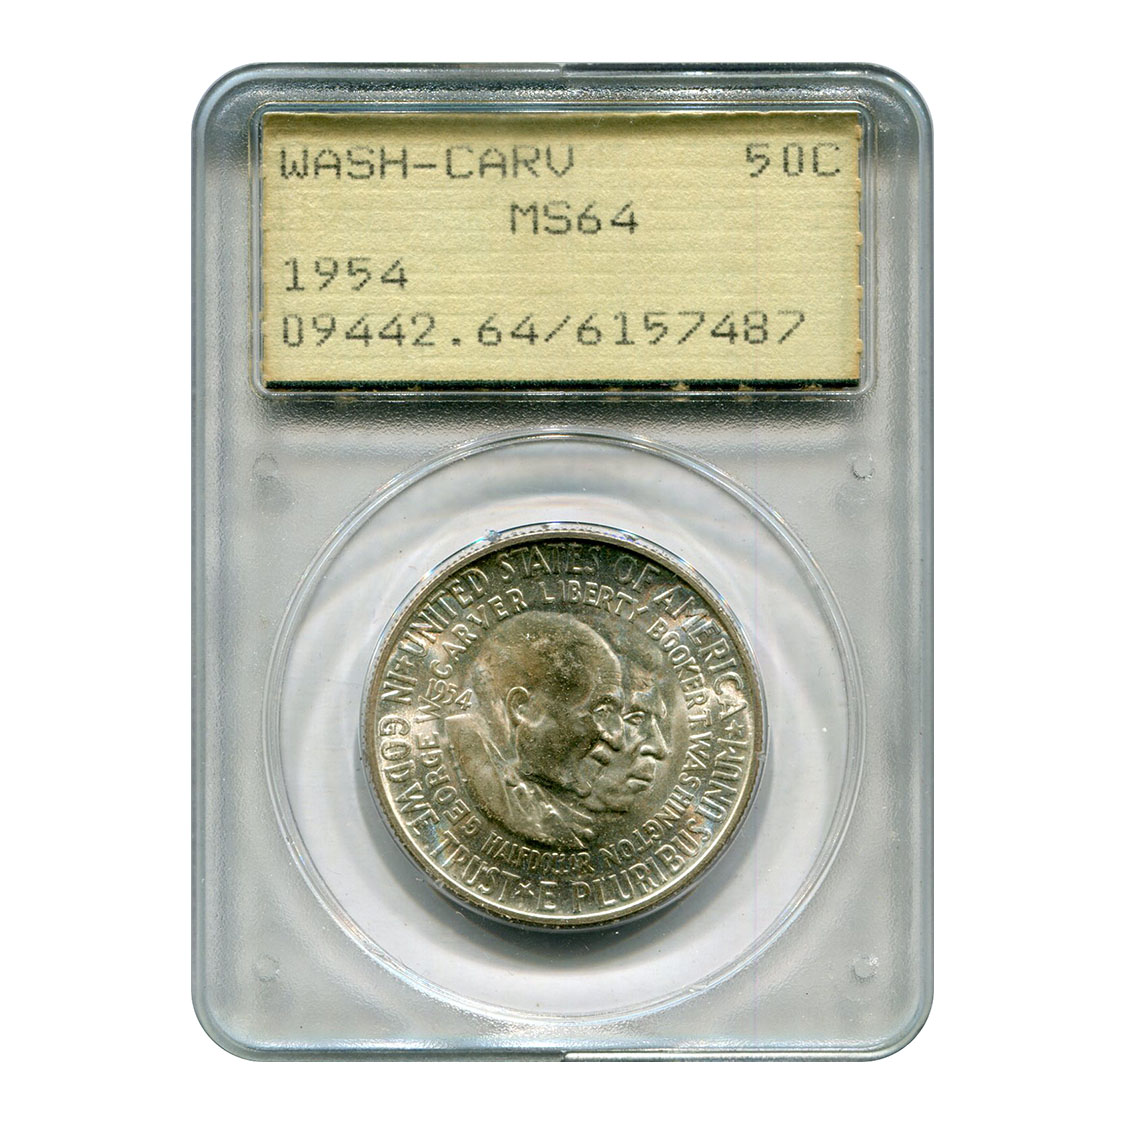 Certified Commemorative Half Dollar Washington Carver 1954 MS64 PCGS Rattler